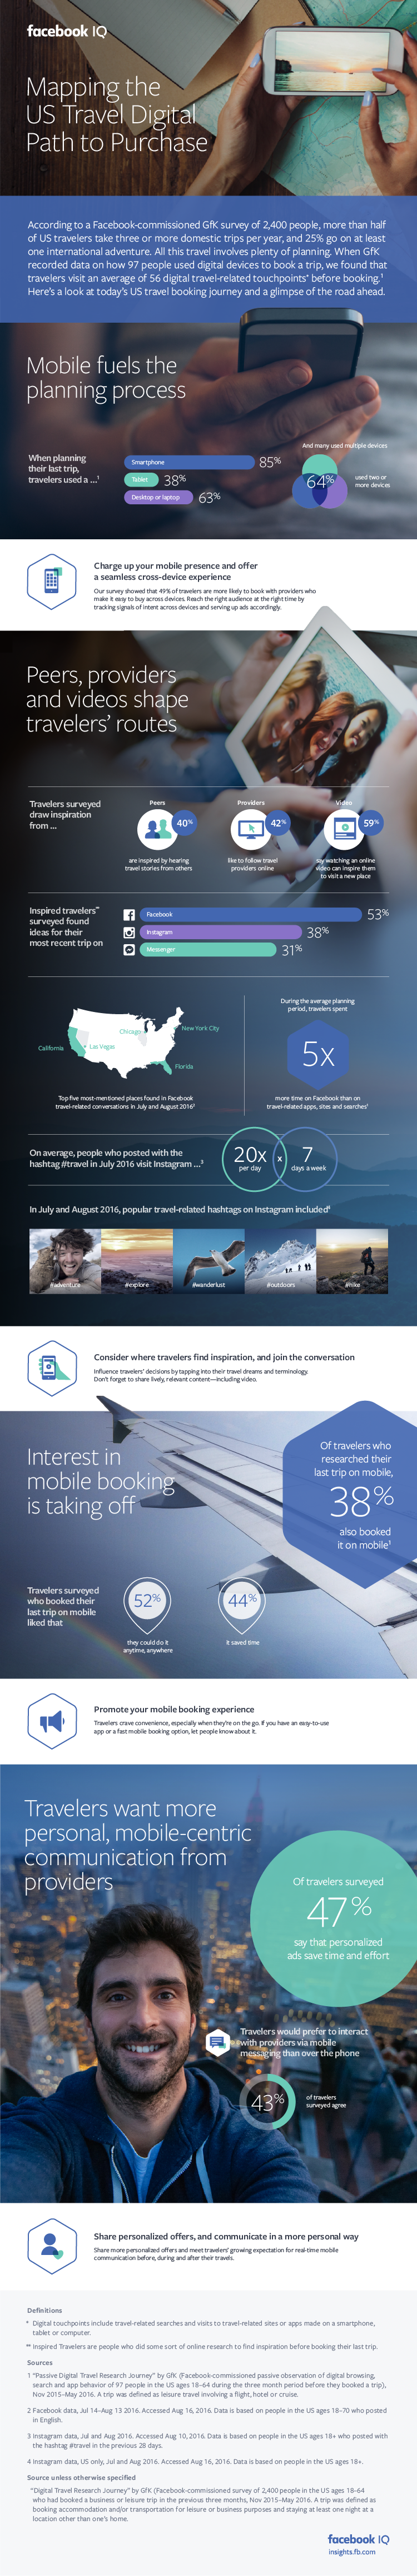 Facebook Conducts Research into How Social and Mobile Influence Travel Purchases [Infographic] | Social Media Today